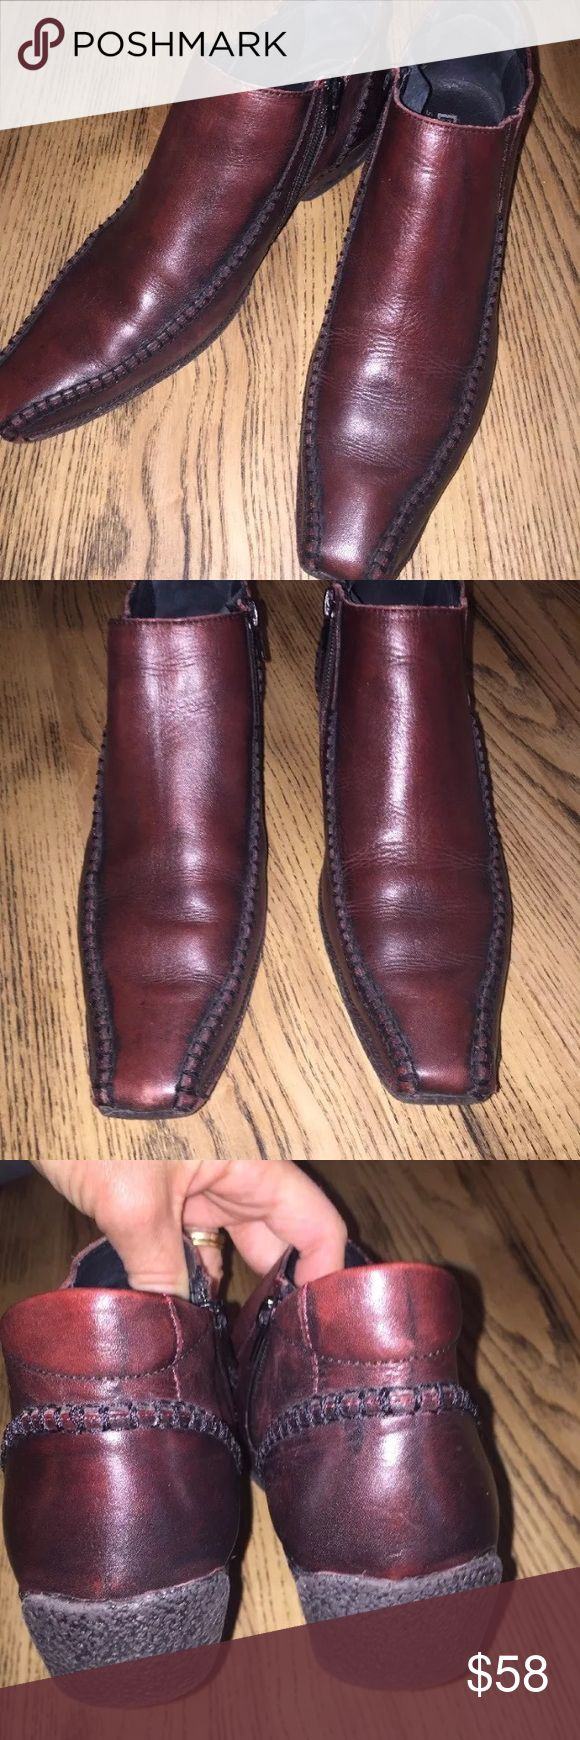 """Pikolinos men ankle shoe cognac leather drive heel Beautiful cognac leather. Stitch accent on toe and heel. Rubber soles with driving heels. Excellent condition. Great treads. Side zipper entry.   European size 40  Aprox 1"""" rise heel  Moderate toe point  Spanish Design  Lined: fits like a 9-9.5 very comfortable PIKOLINOS Shoes Boots"""